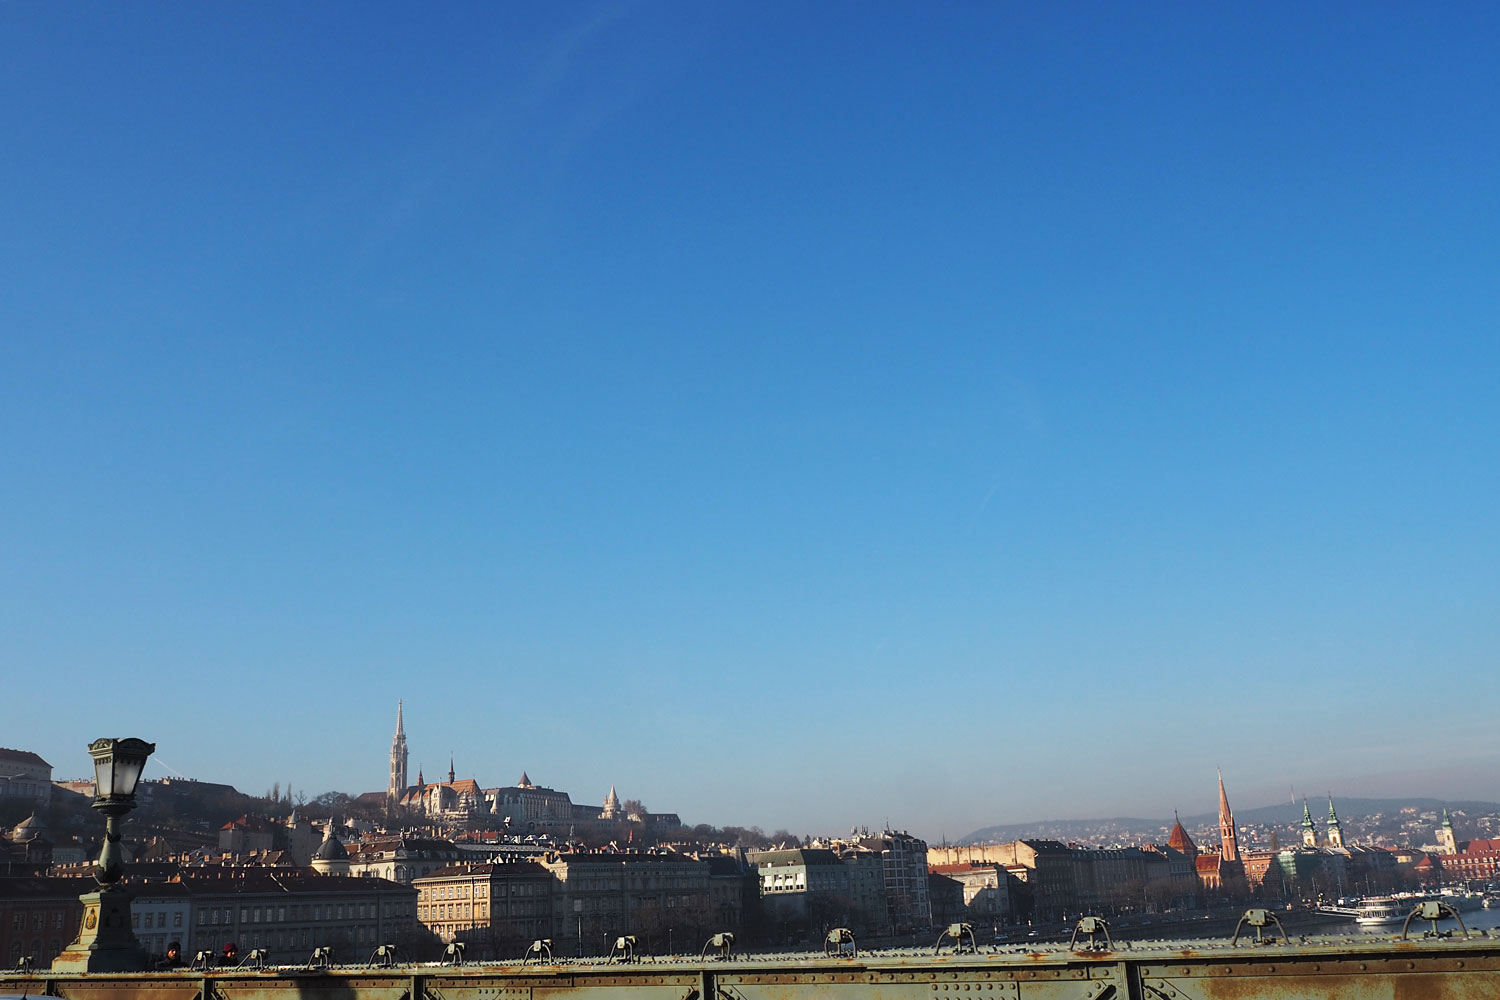 view-from-chain-bridge-budapest-travel-blog-review-zoe-newlove